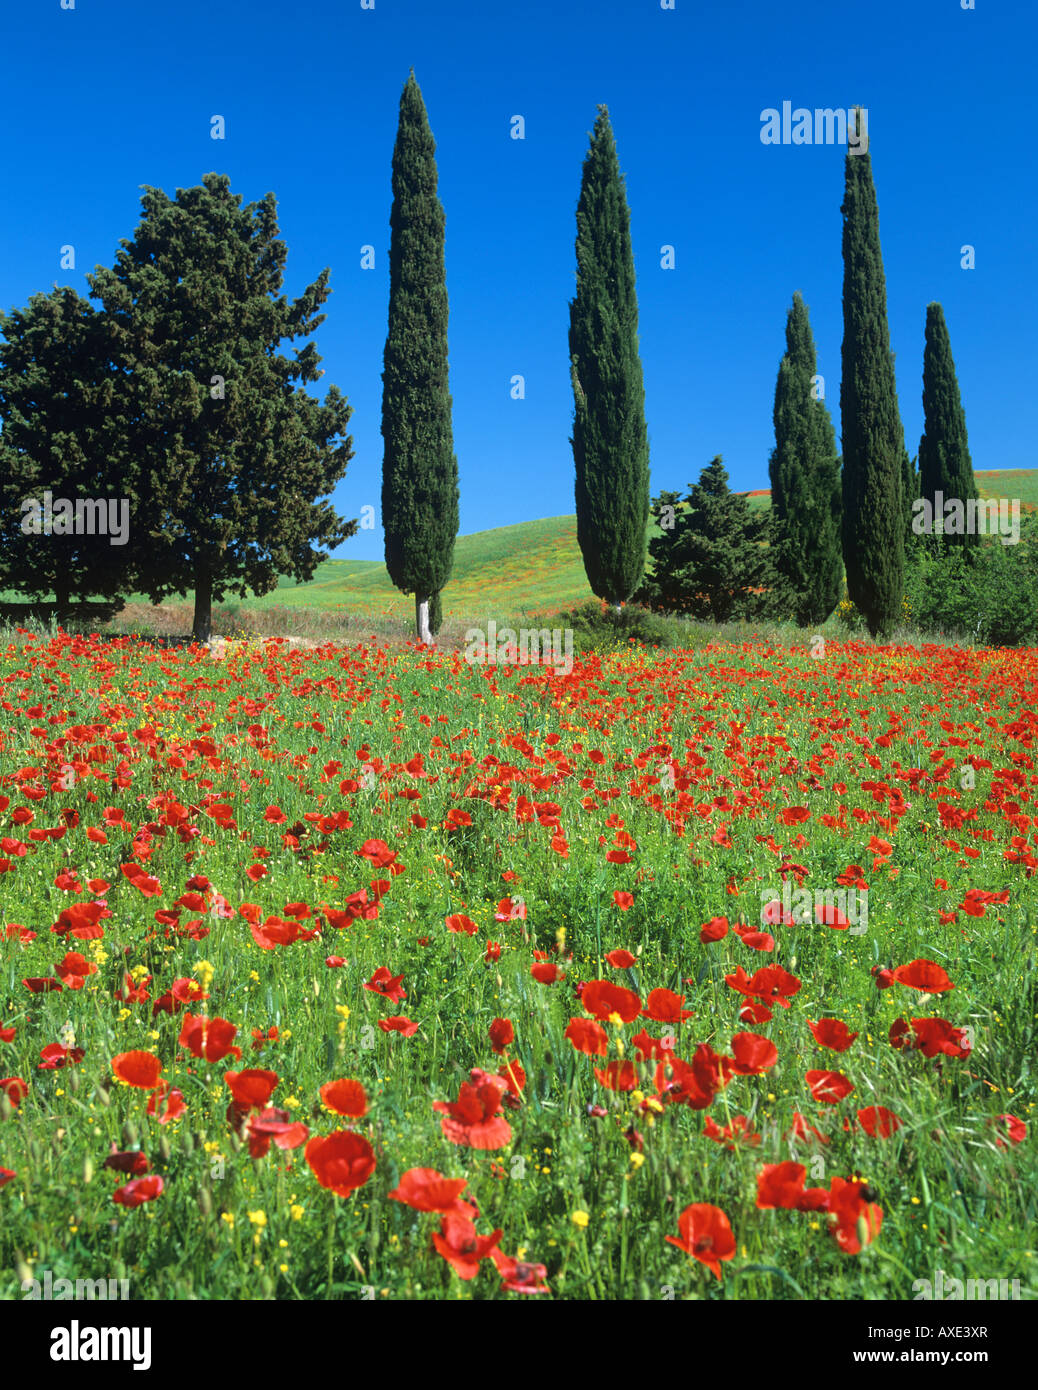 Cypress trees and poppies in tuscan countryside,tuscany,Italy. - Stock Image